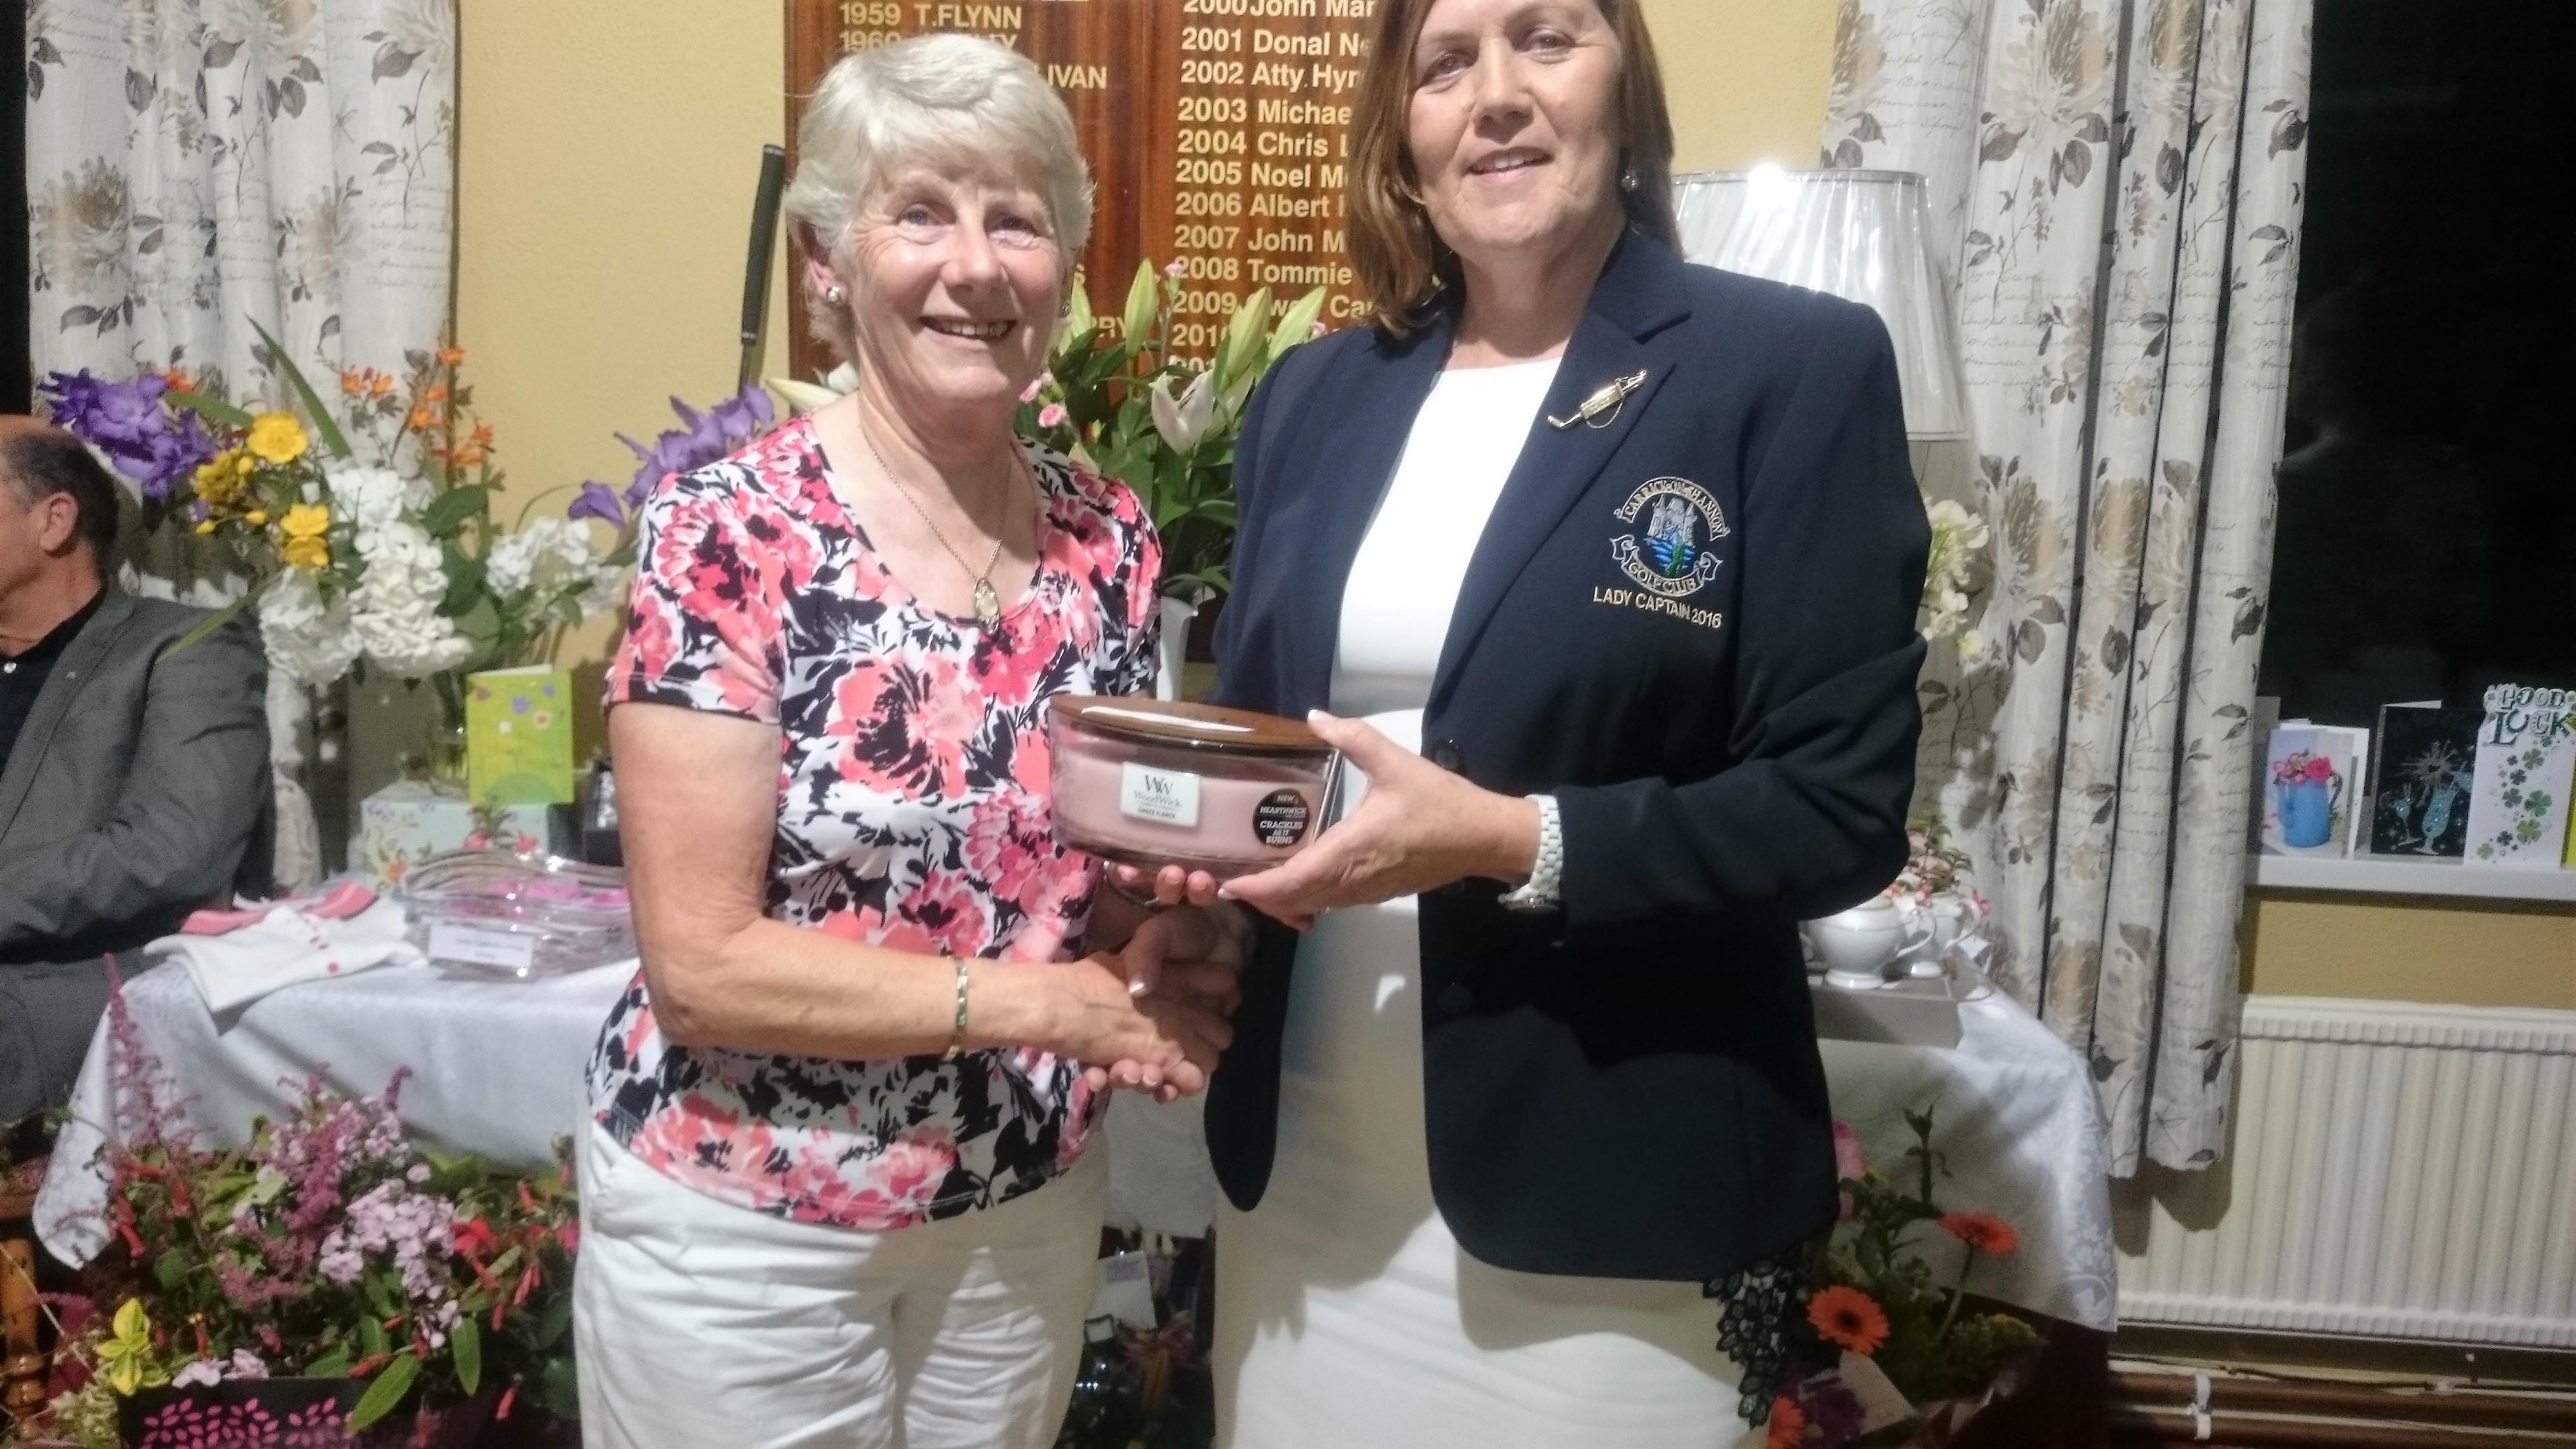 LADY CAPTAINS DAY: Mary O'Rourke(Past Captain's), Lady Captain Noeleen Moffatt